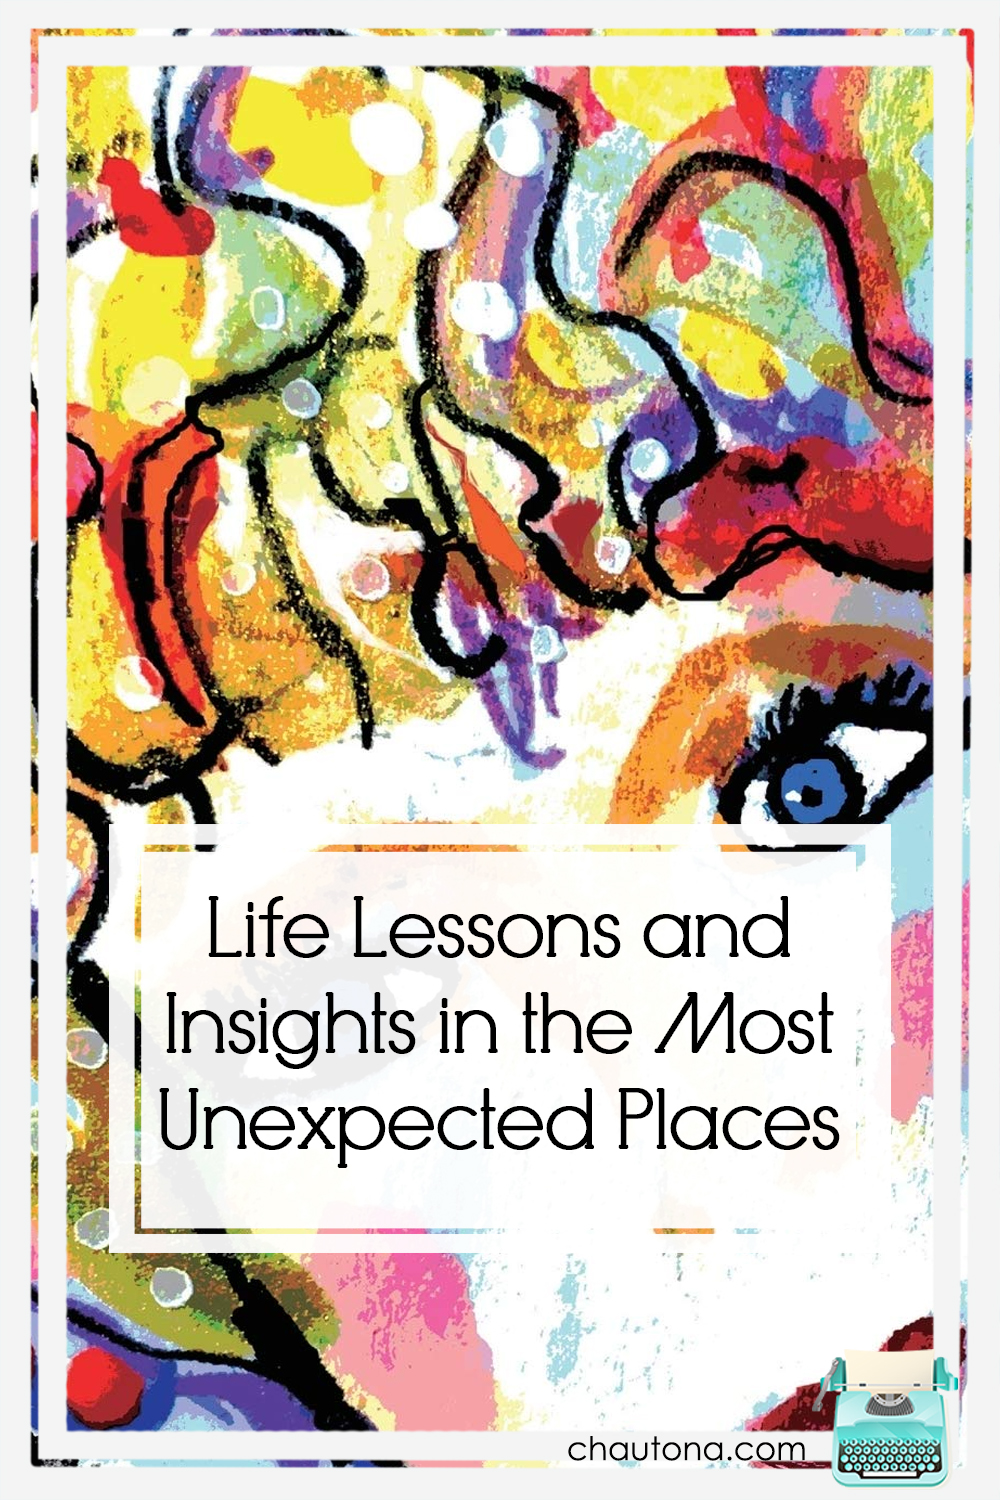 These poetry gift books offer deep lessons to keep your mind occupied while engaging other senses with vibrant artwork. Perfect gifts! via @chautonahavig